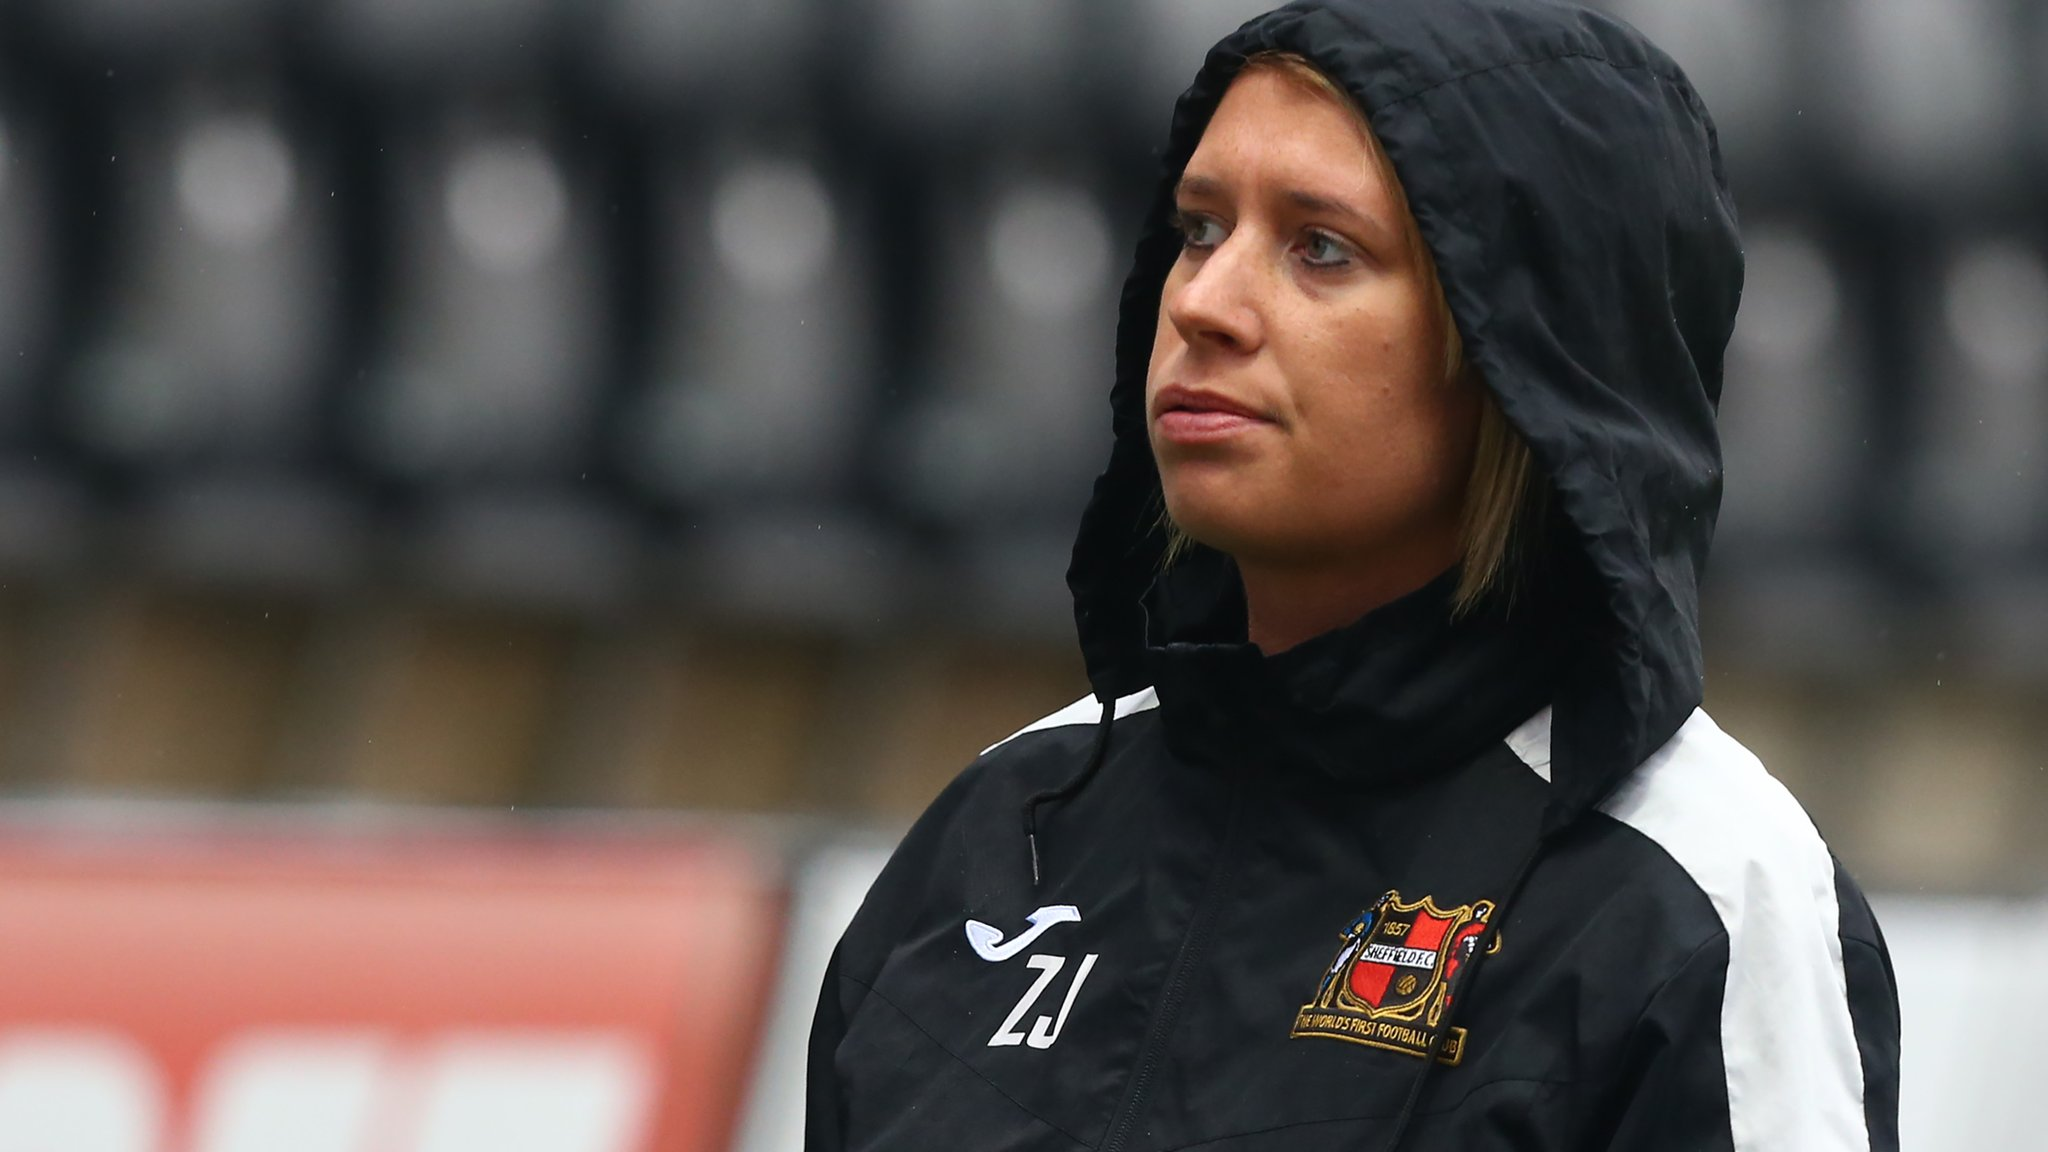 Sheffield FC Ladies withdraw from FA Women's Championship because of financial problems